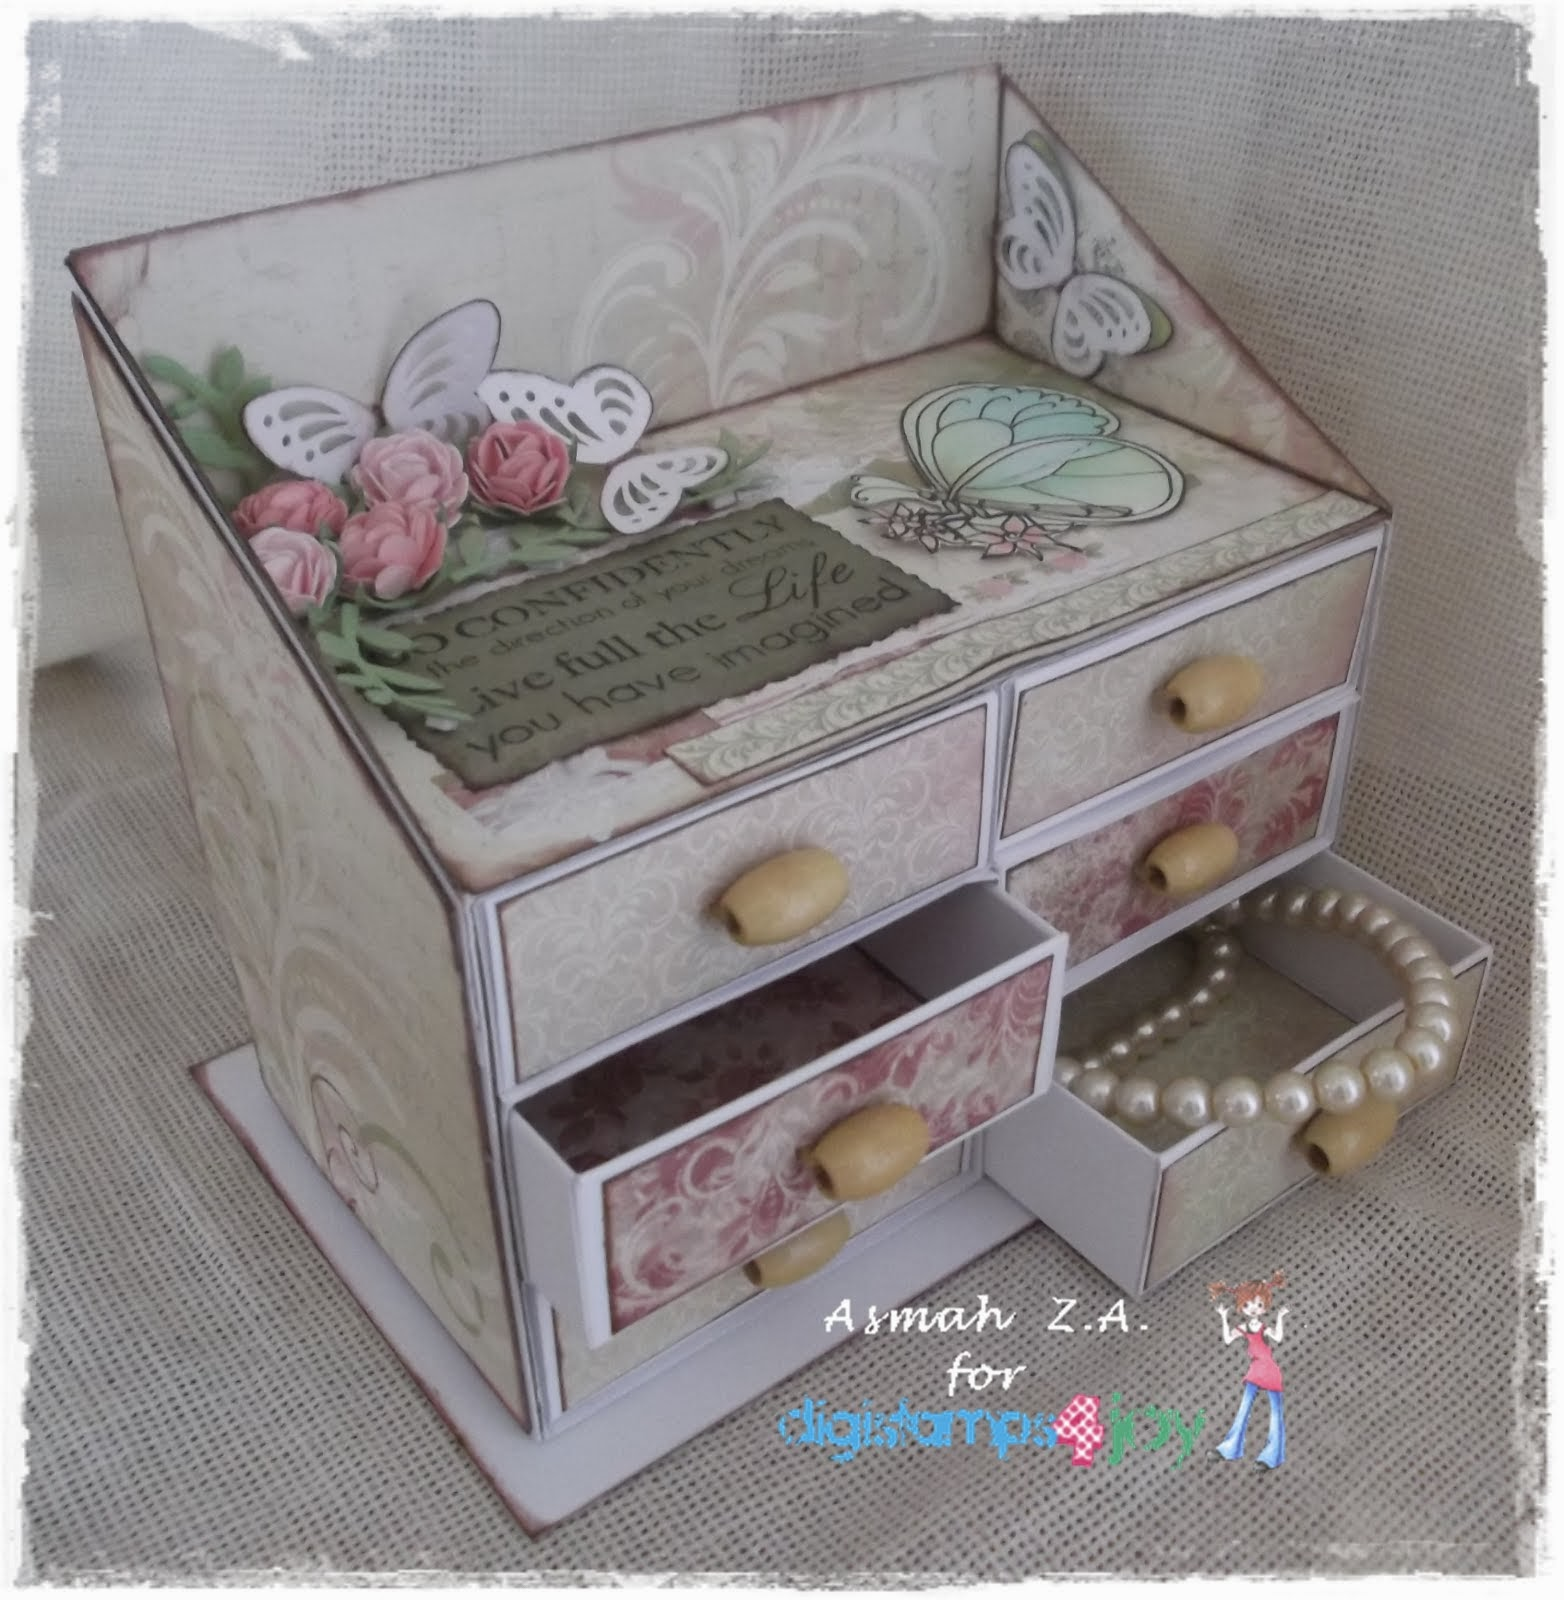 Top 3 winner for this dresser (6 November 2013):